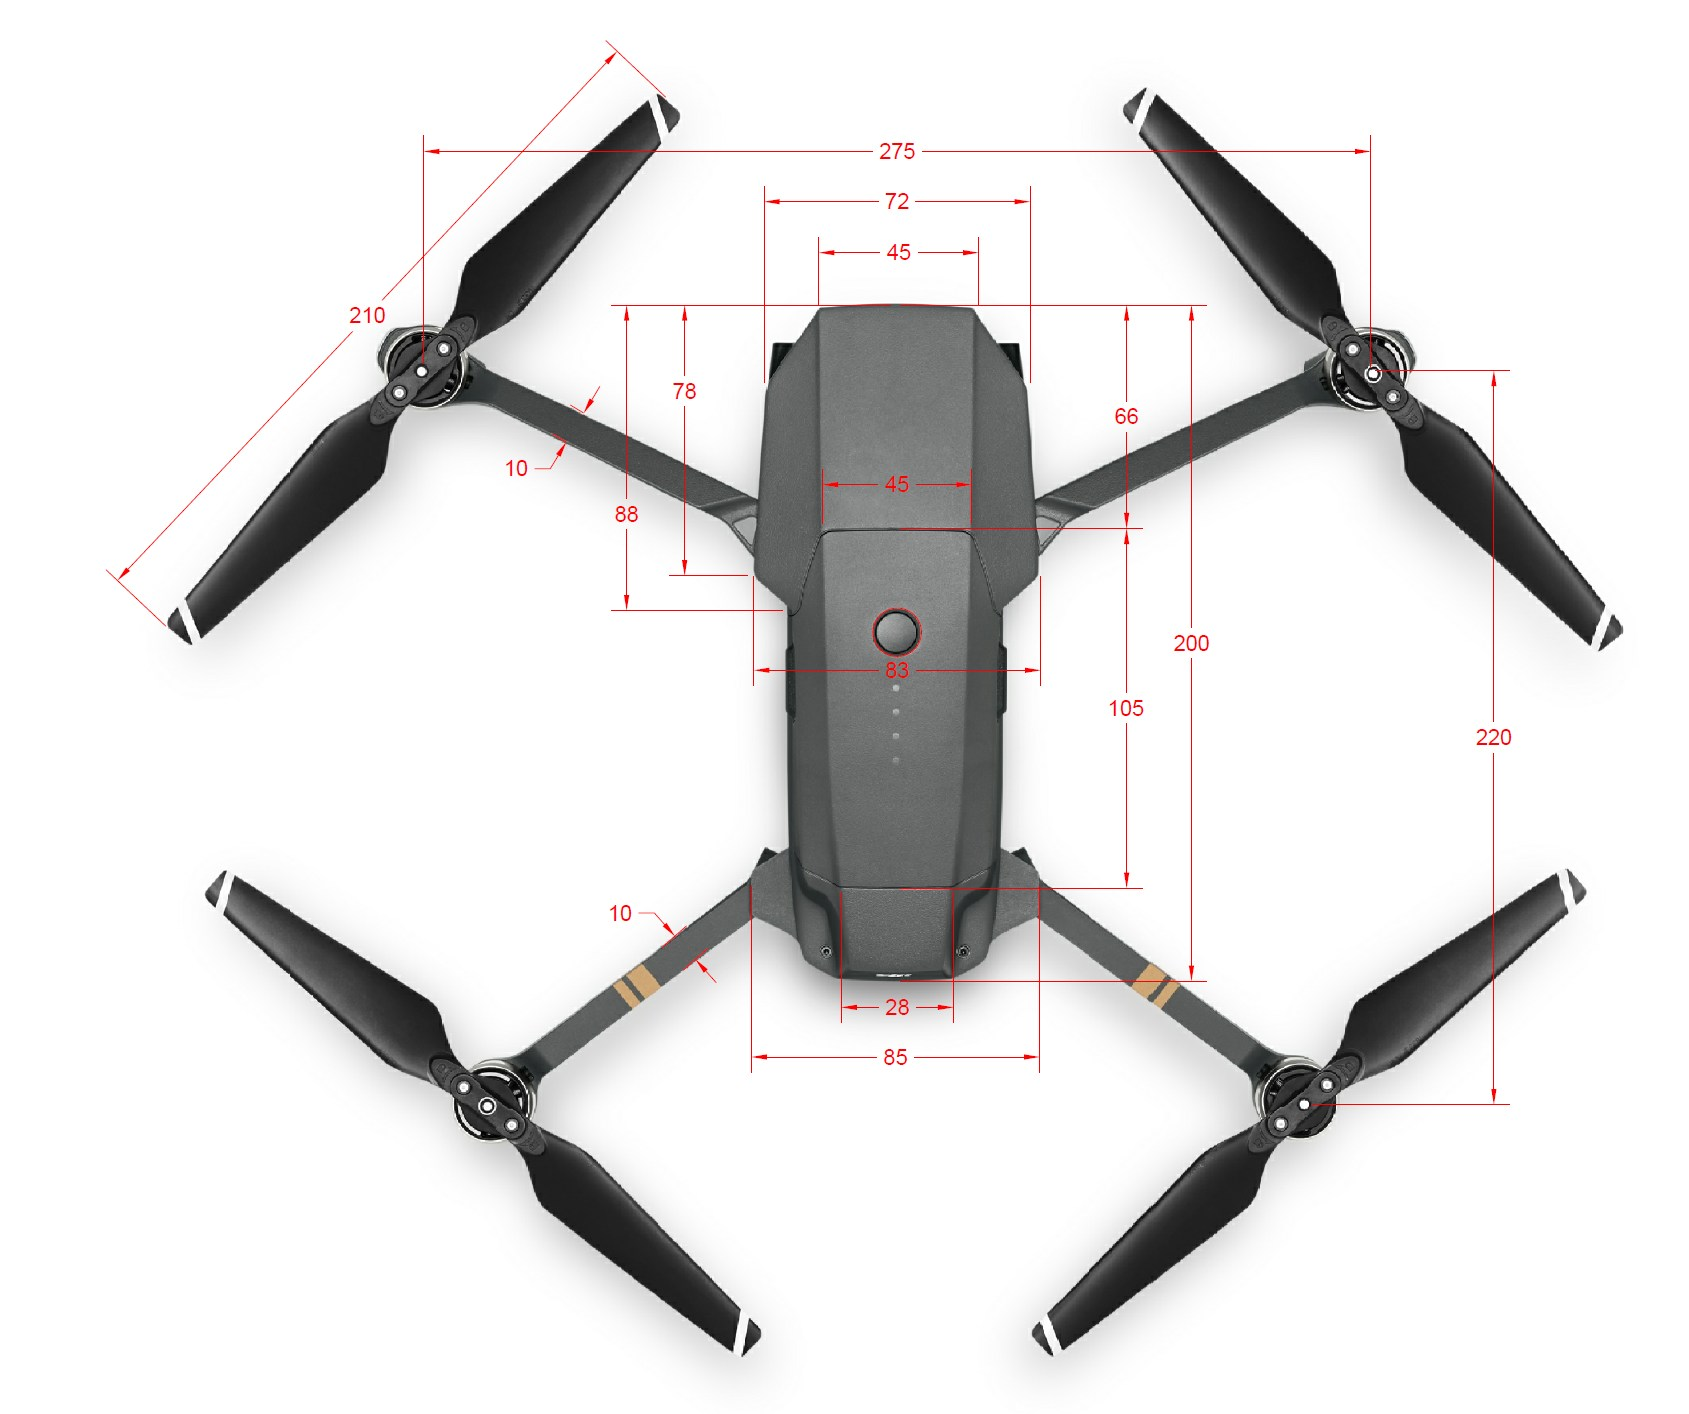 Favor Please Need Dimensions For Mavic Pro UPDATED